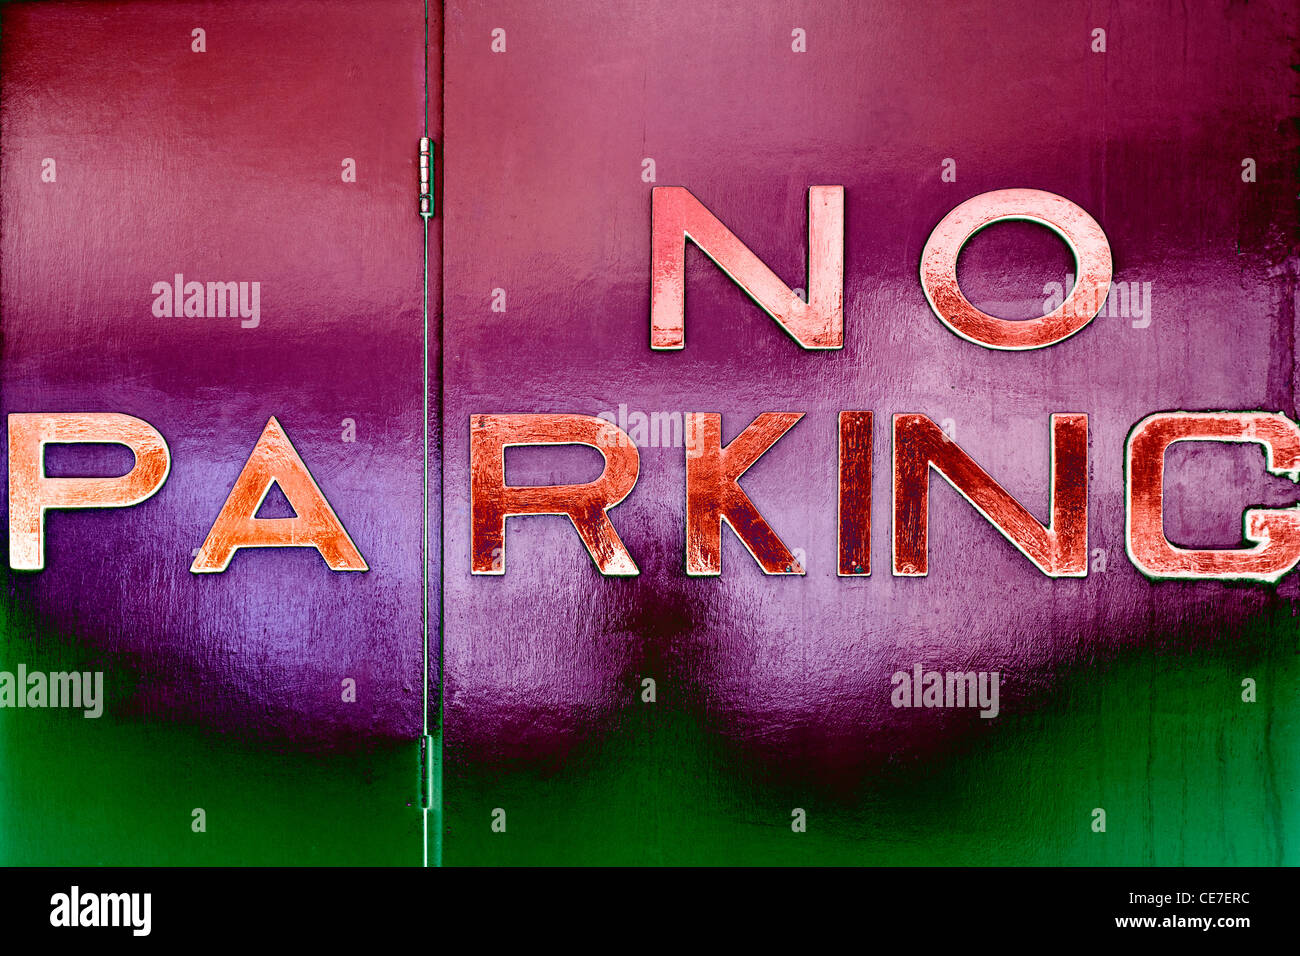 No parking sign, Dublin, Ireland - Stock Image